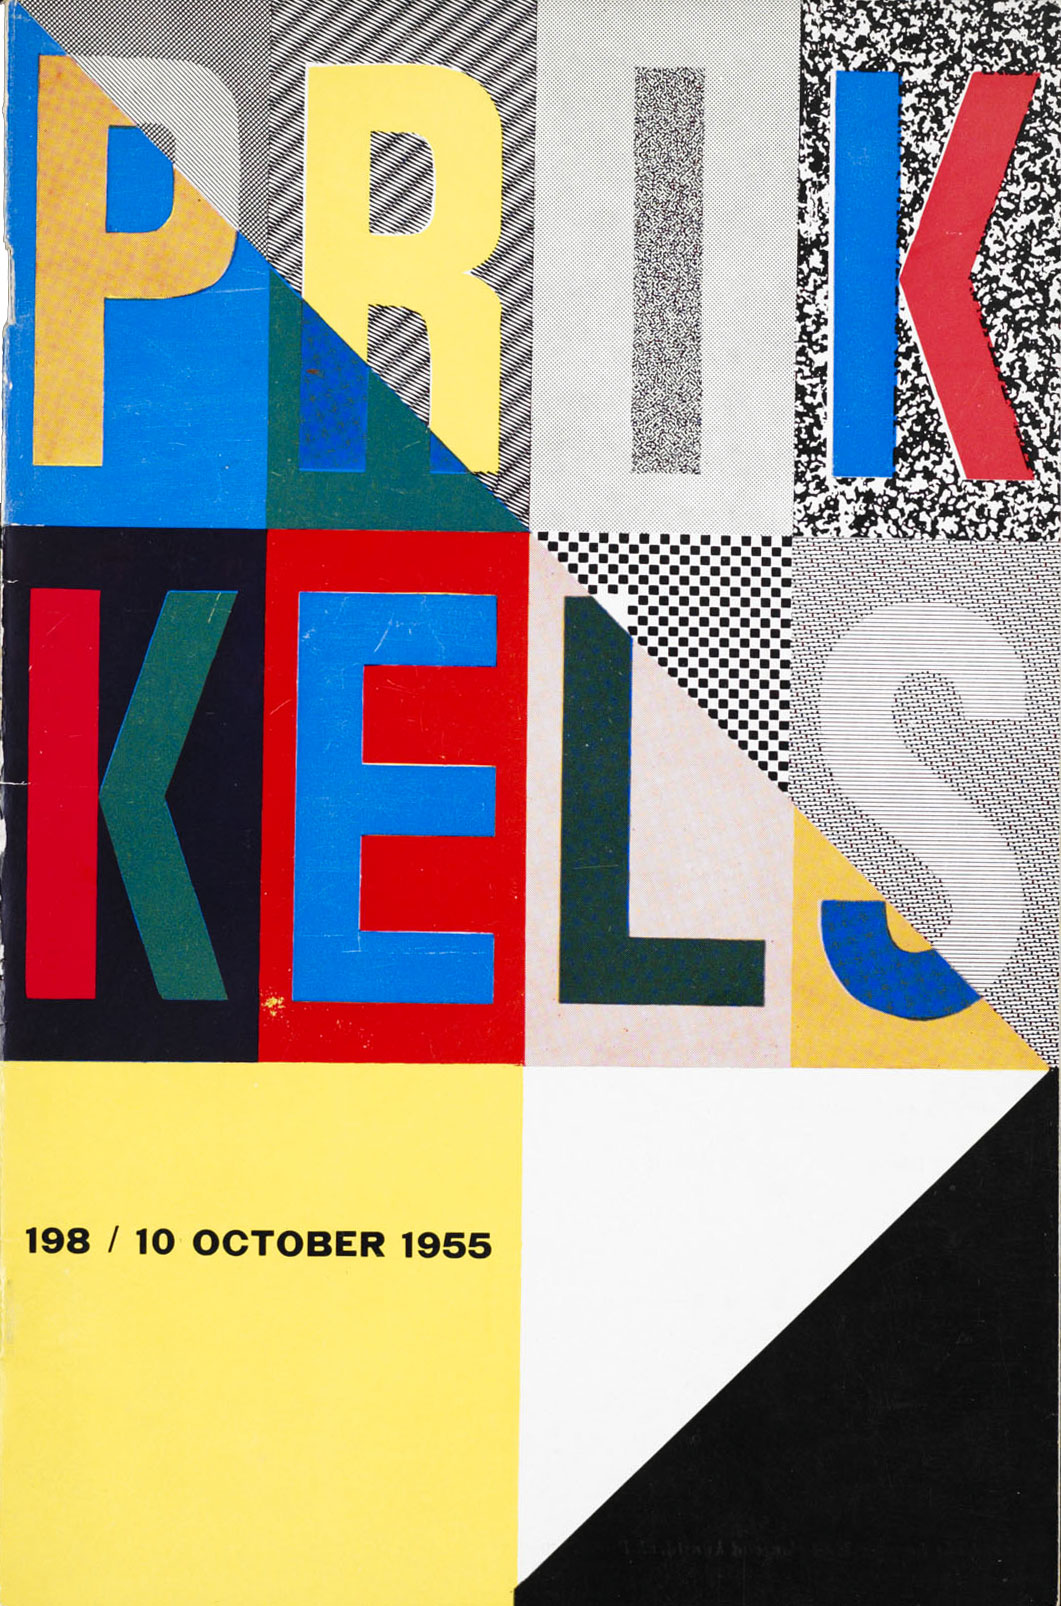 Jurriaan-Schrofer-Prikkels-no-198-1955